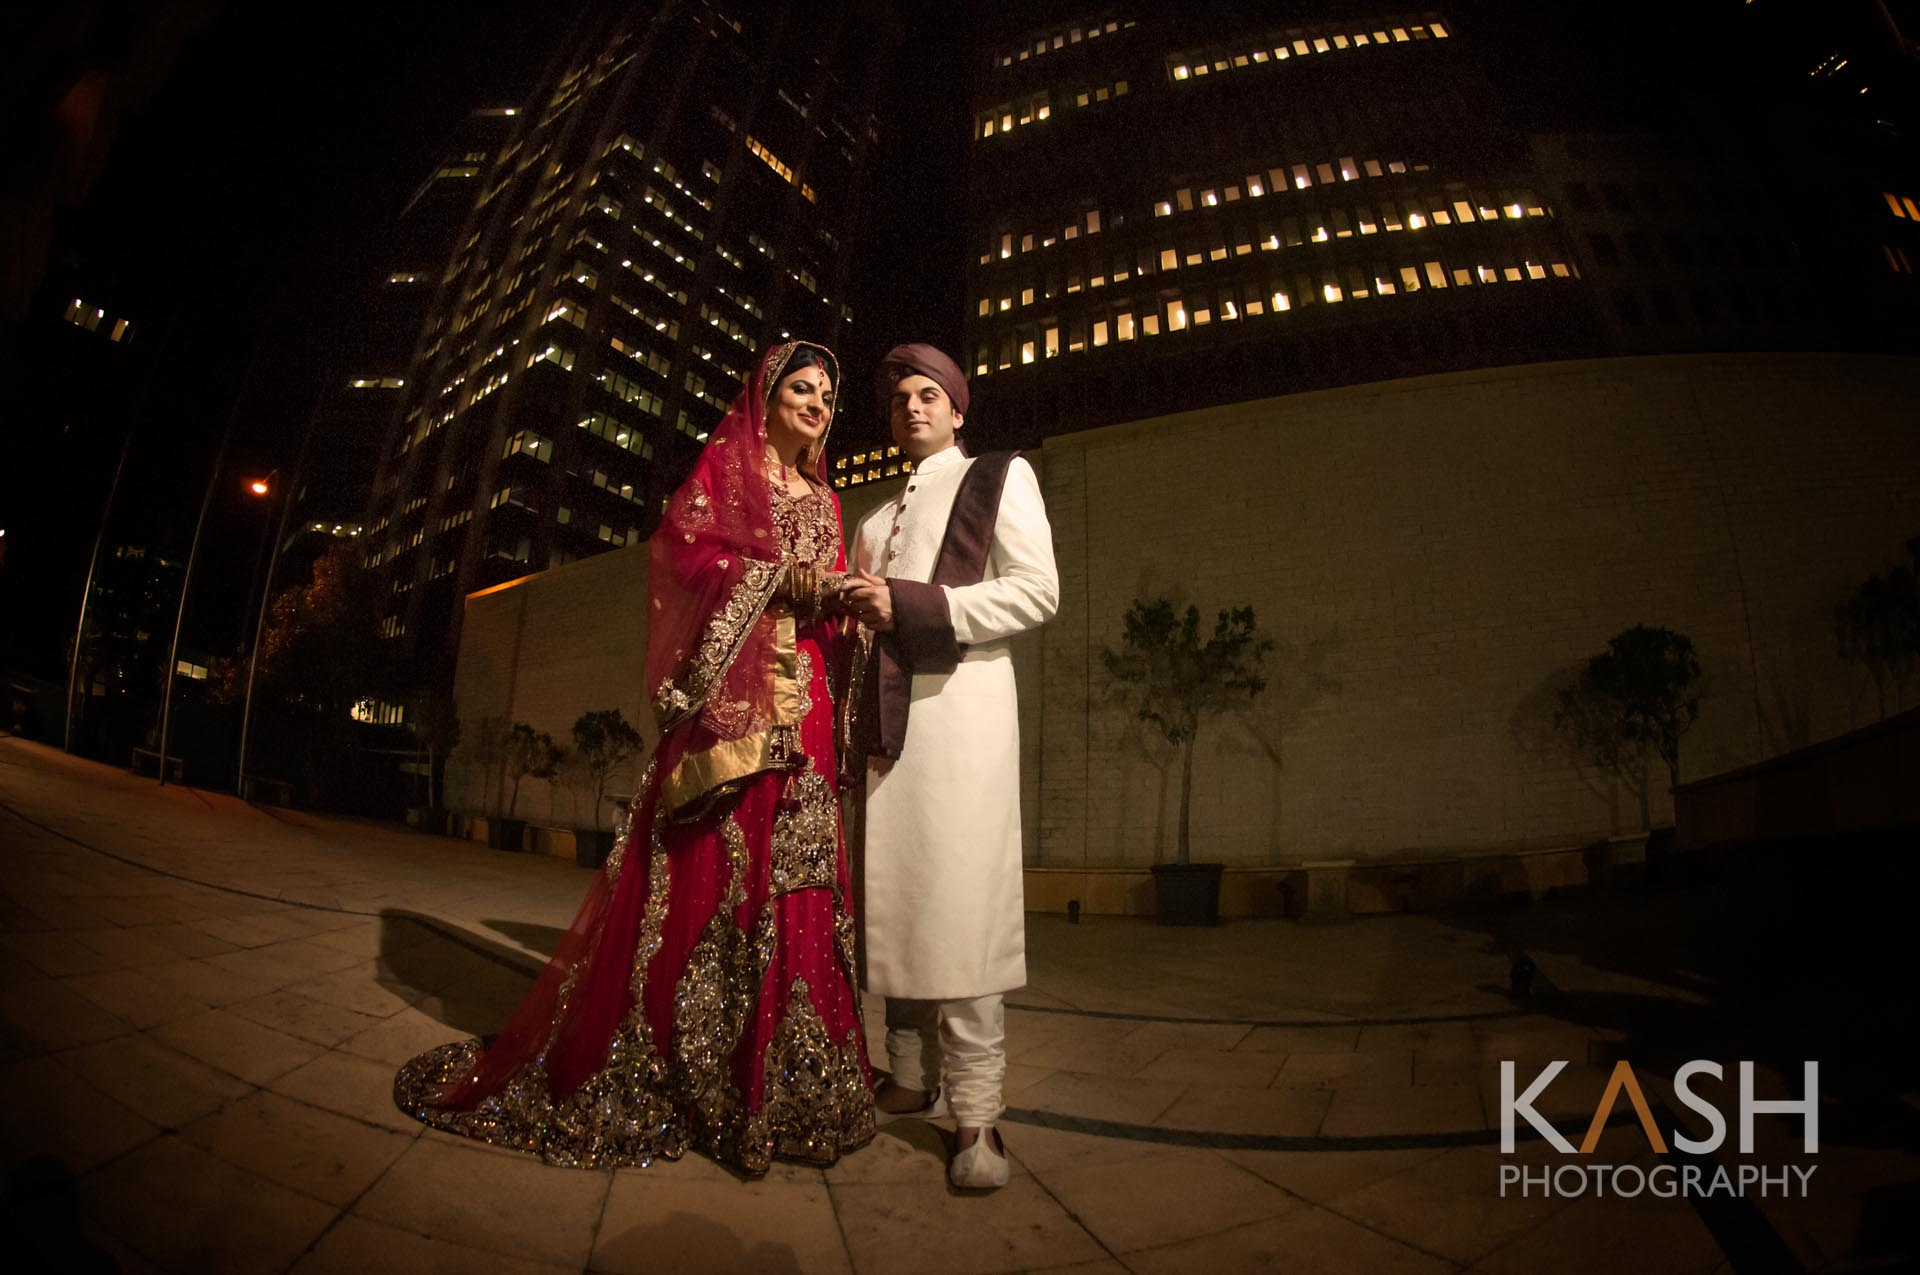 KASH PHOTOGRAPHY 1705